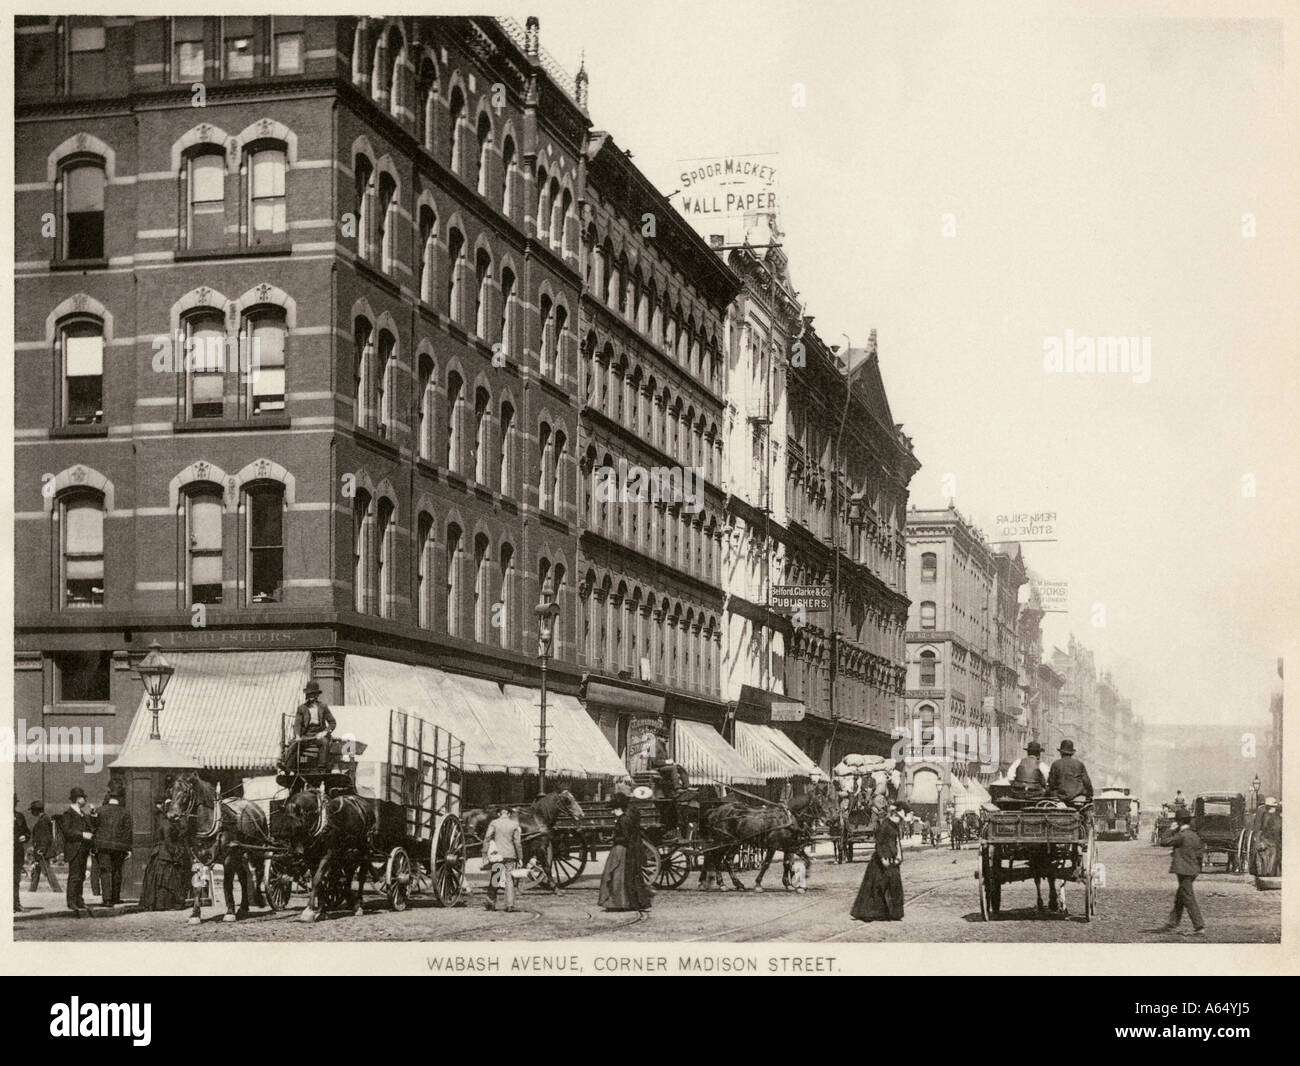 Wabash Avenue at the corner of Madison Street downtown Chicago 1890s. Albertype - Stock Image